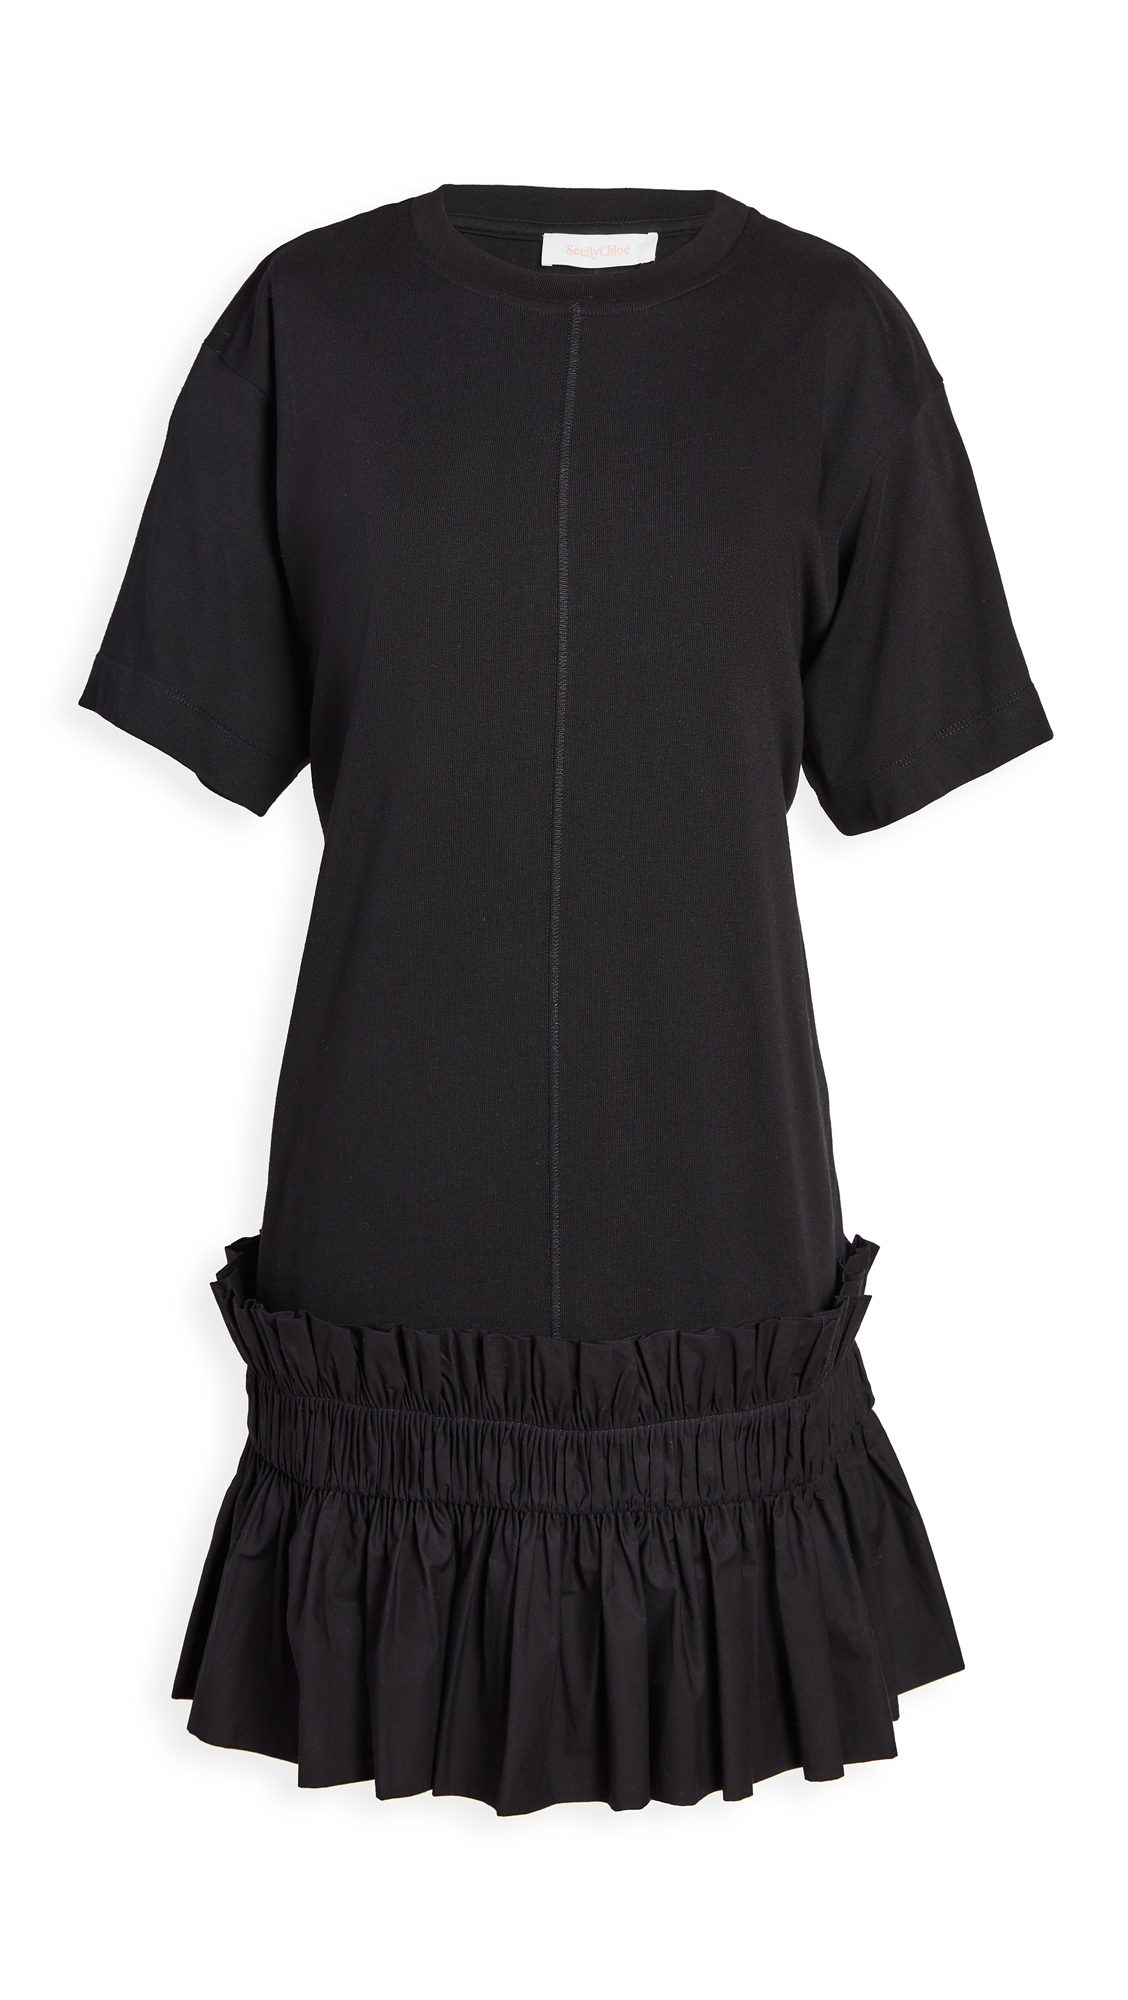 See by Chloe Drop Waist T-Shirt Dress - 40% Off Sale